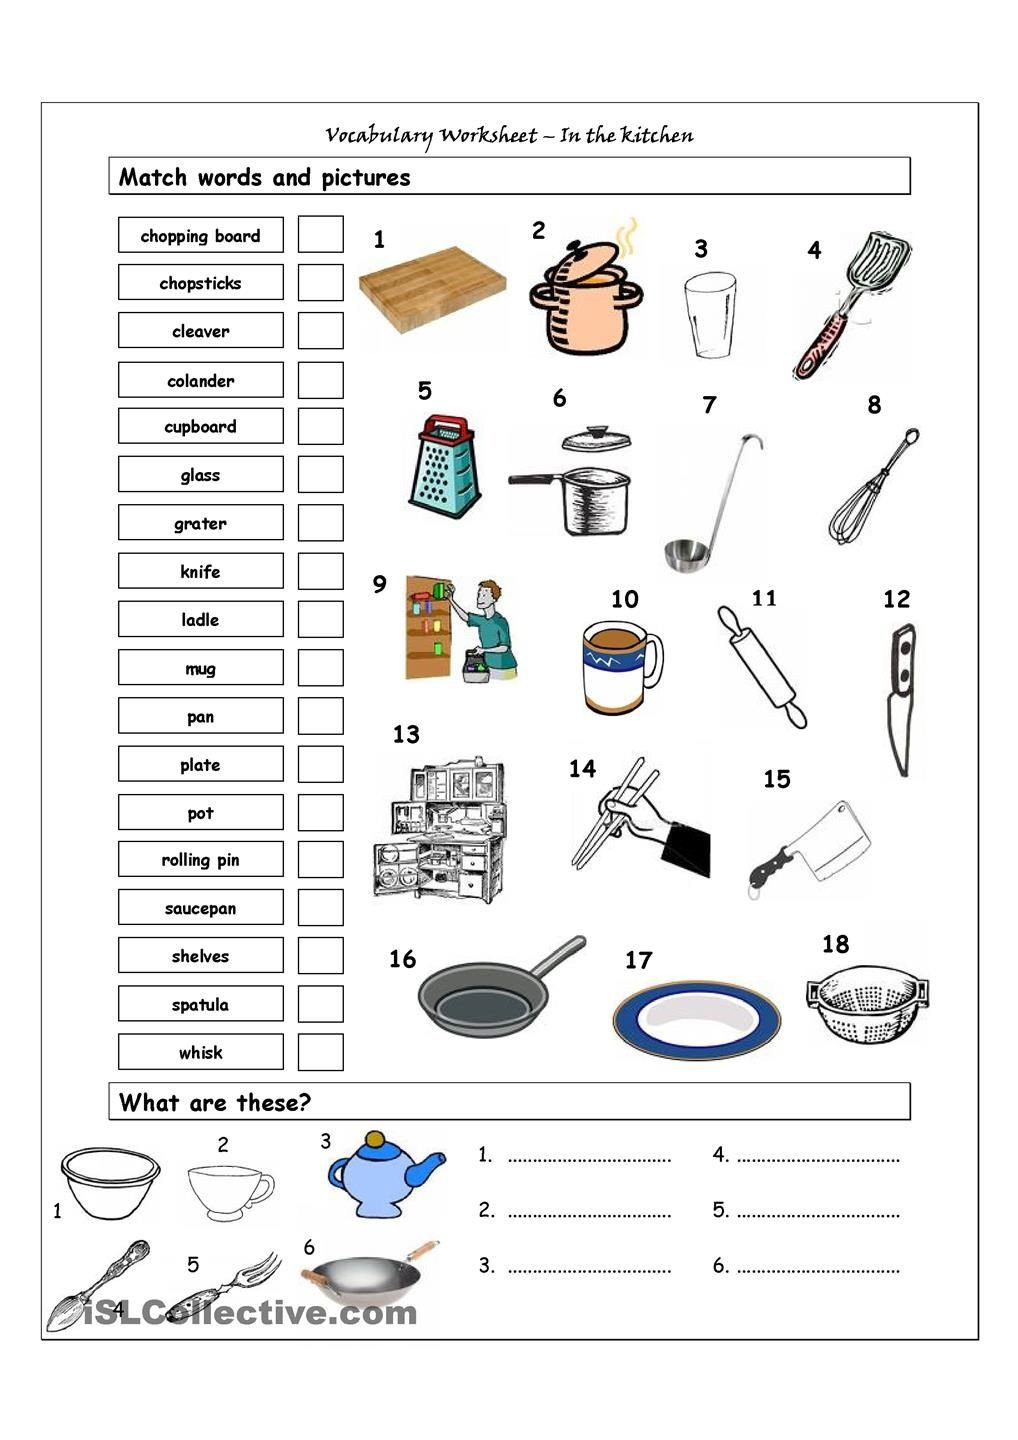 Kitchen Math Worksheets Vocabulary Matching Worksheet In the Kitchen